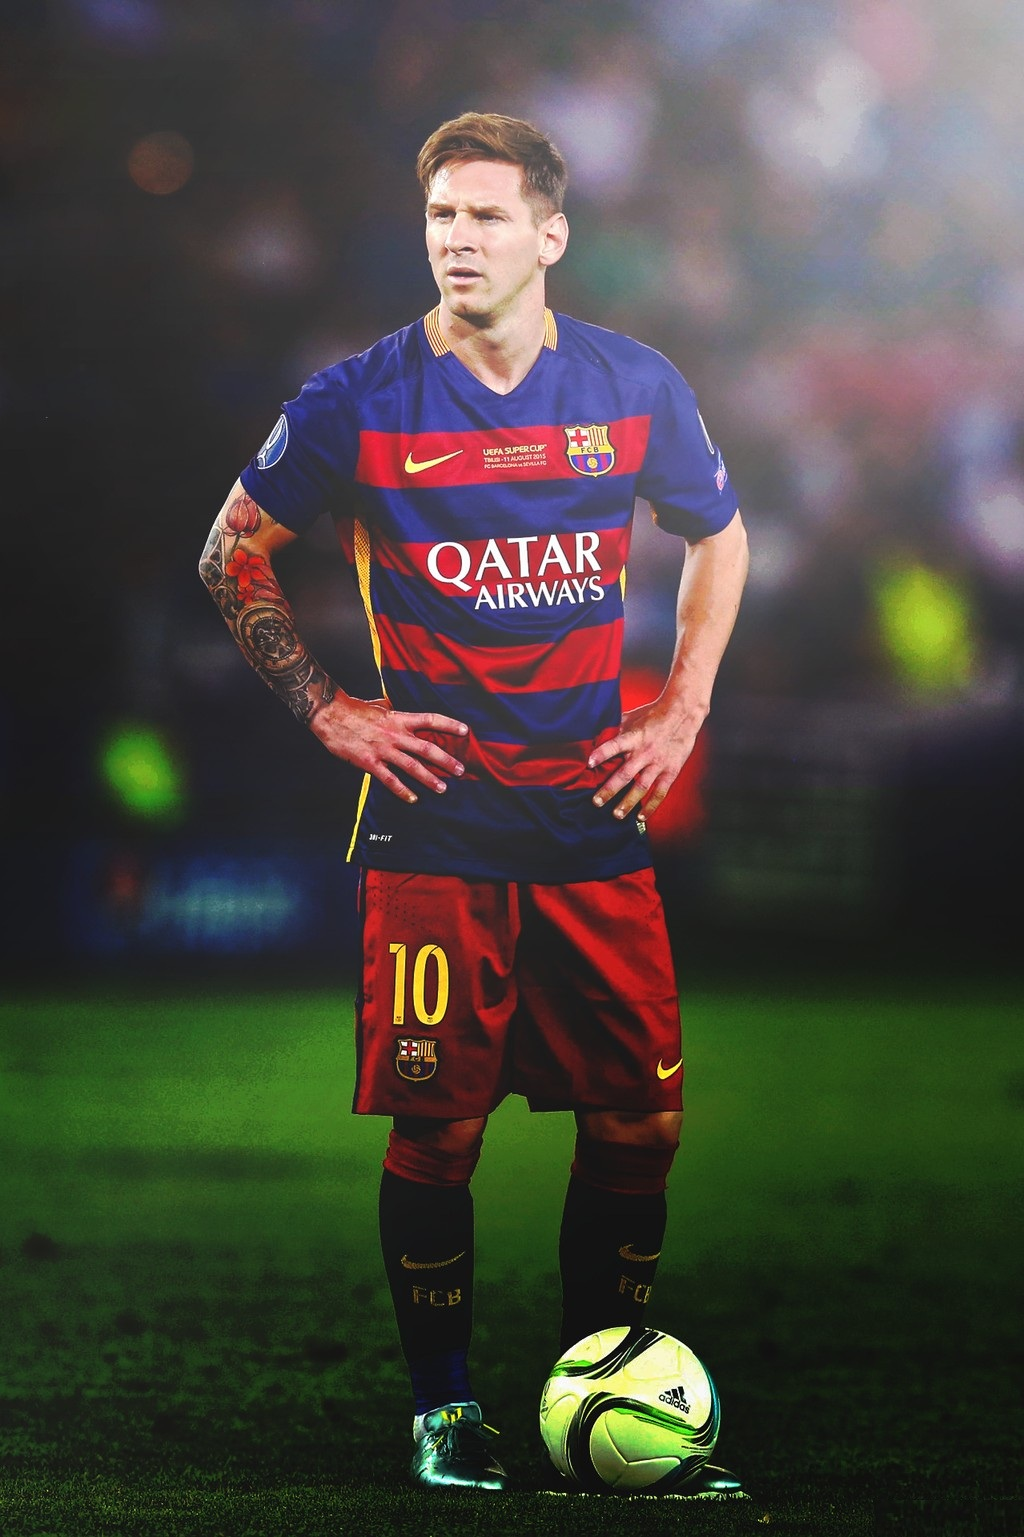 -Lionel-Messi-Iphone-Wallpaper-2018